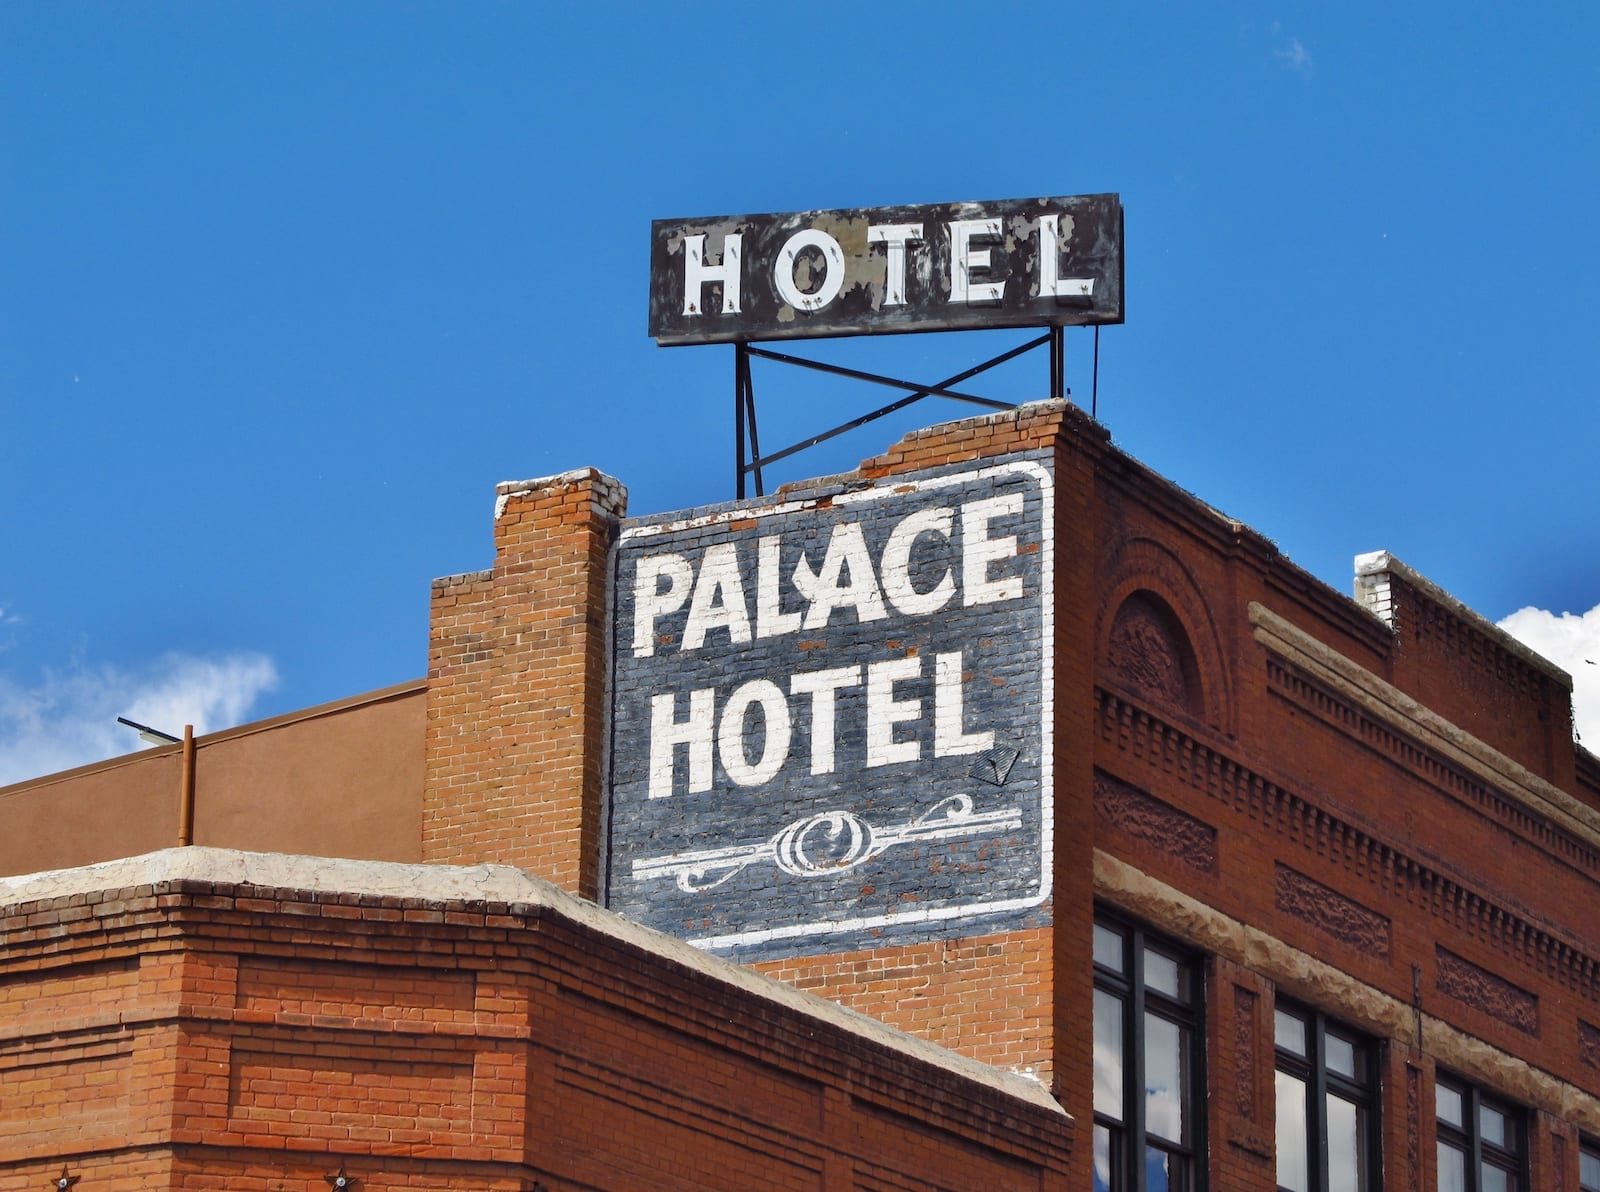 The Palace Hotel, CO